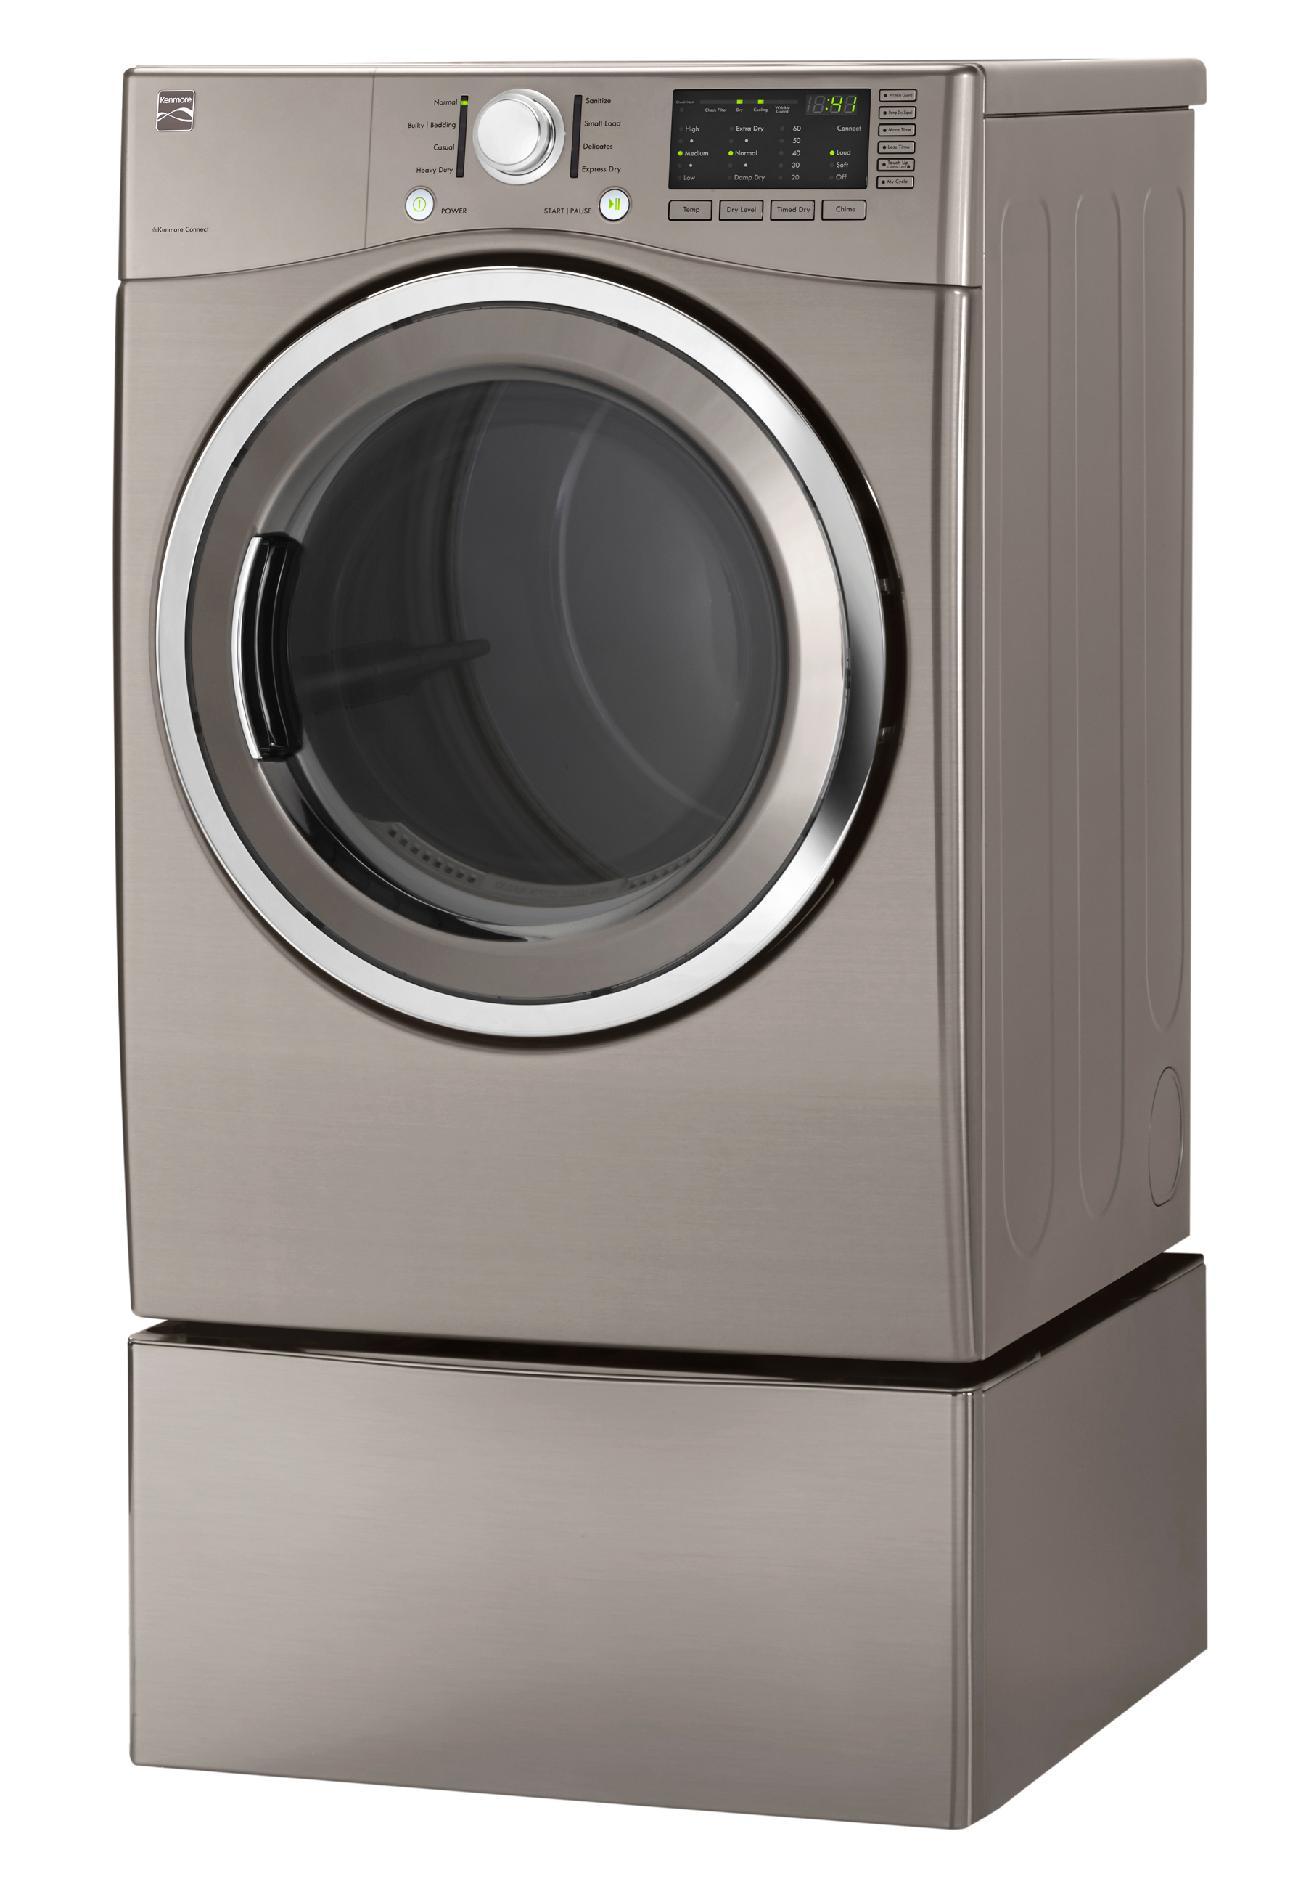 Kenmore 7.3 cu. ft. Electric Dryer  - Metallic